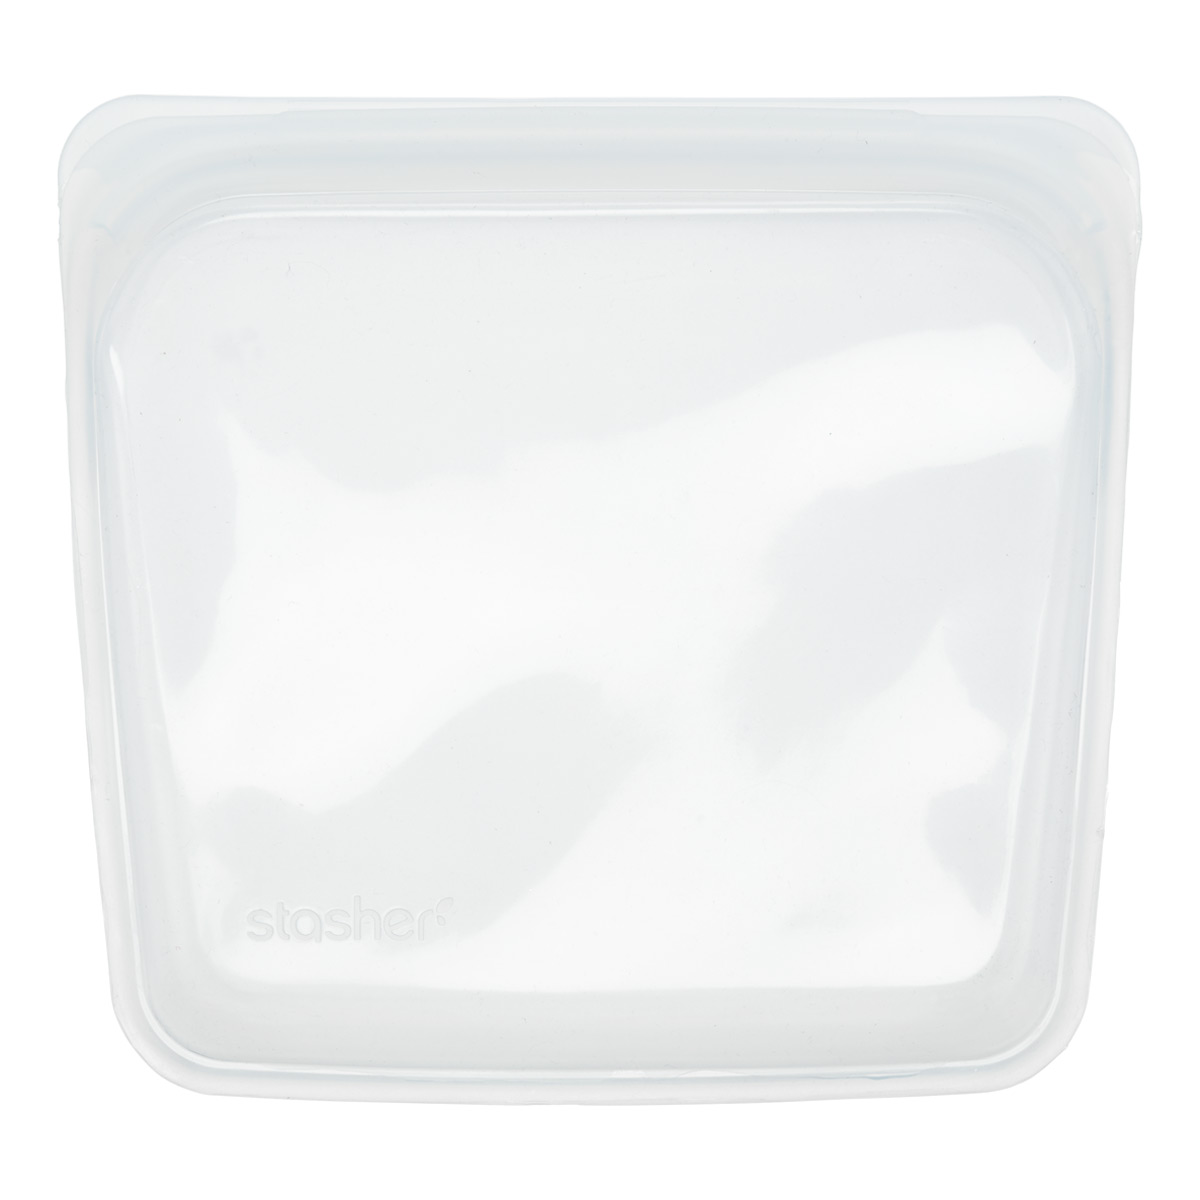 Silicone Reusable Storage Bag